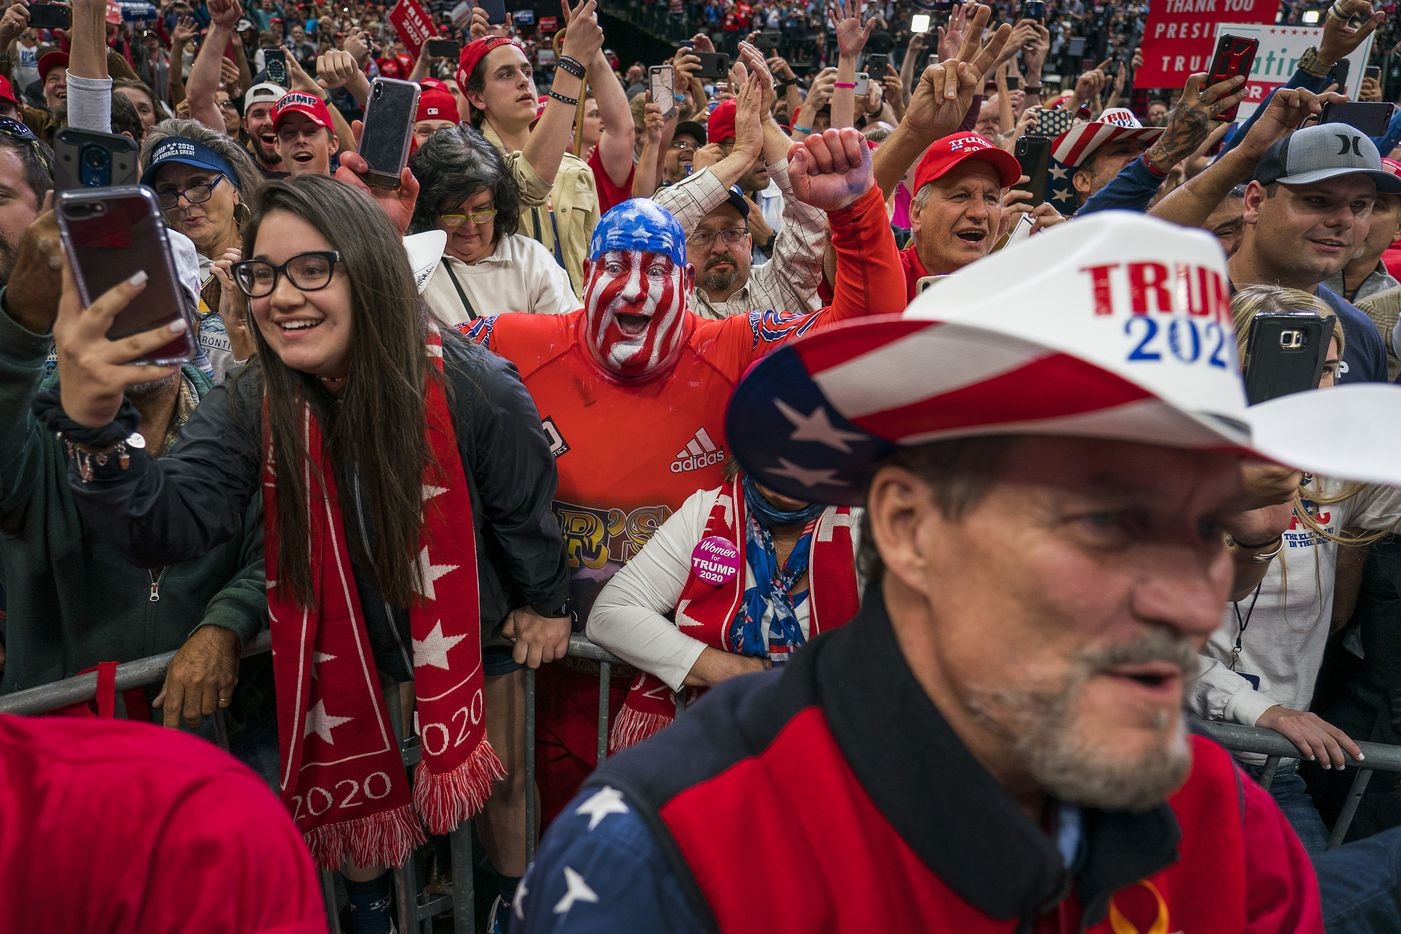 Supporters cheer as President Donald Trump takes the stage for a campaign rally at the American Airlines Center on Thursday, Oct. 17, 2019, in Dallas.